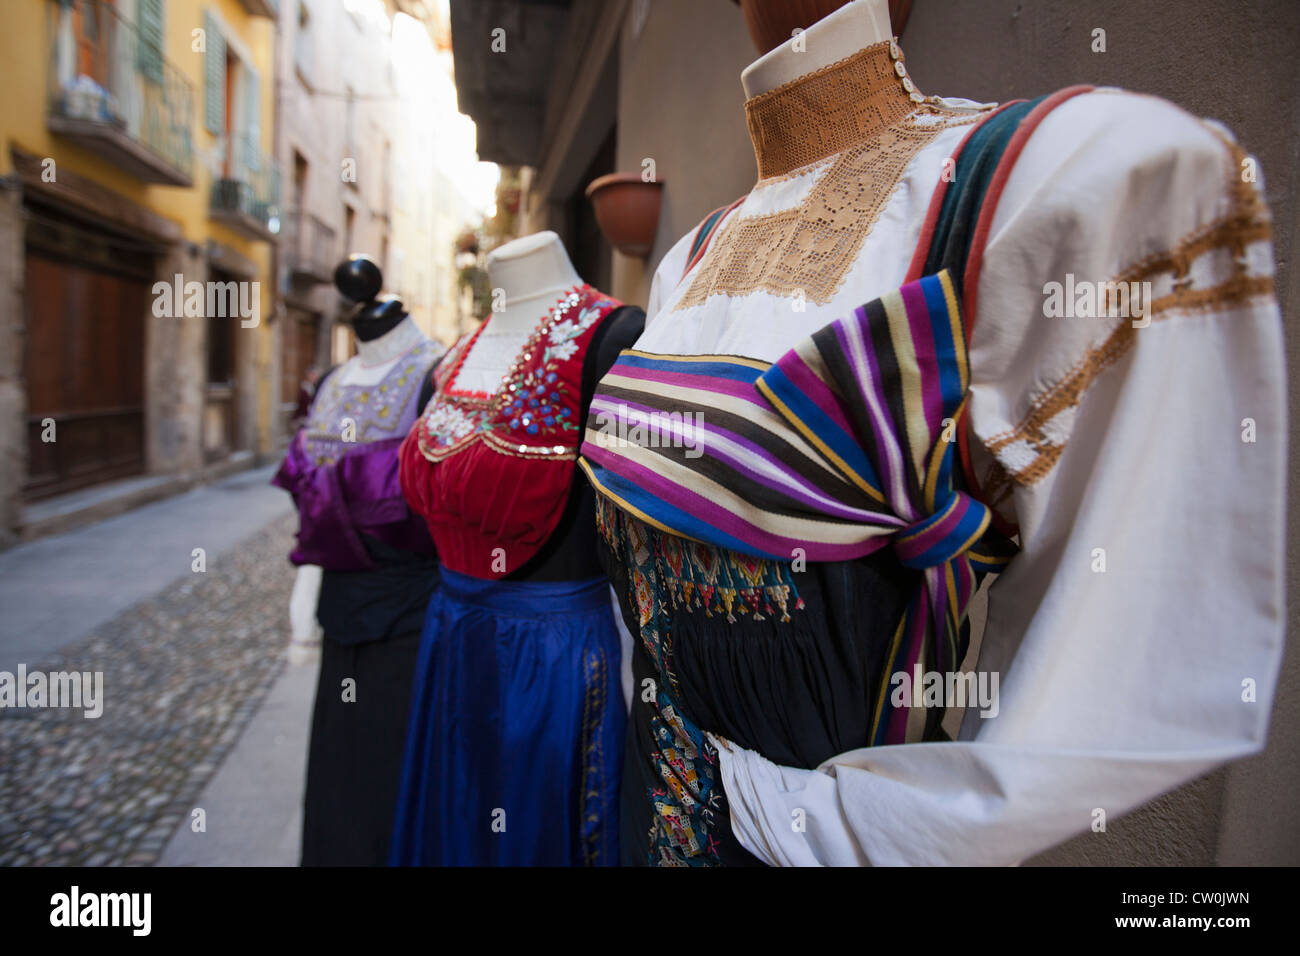 Mannequins in traditional dresses - Stock Image